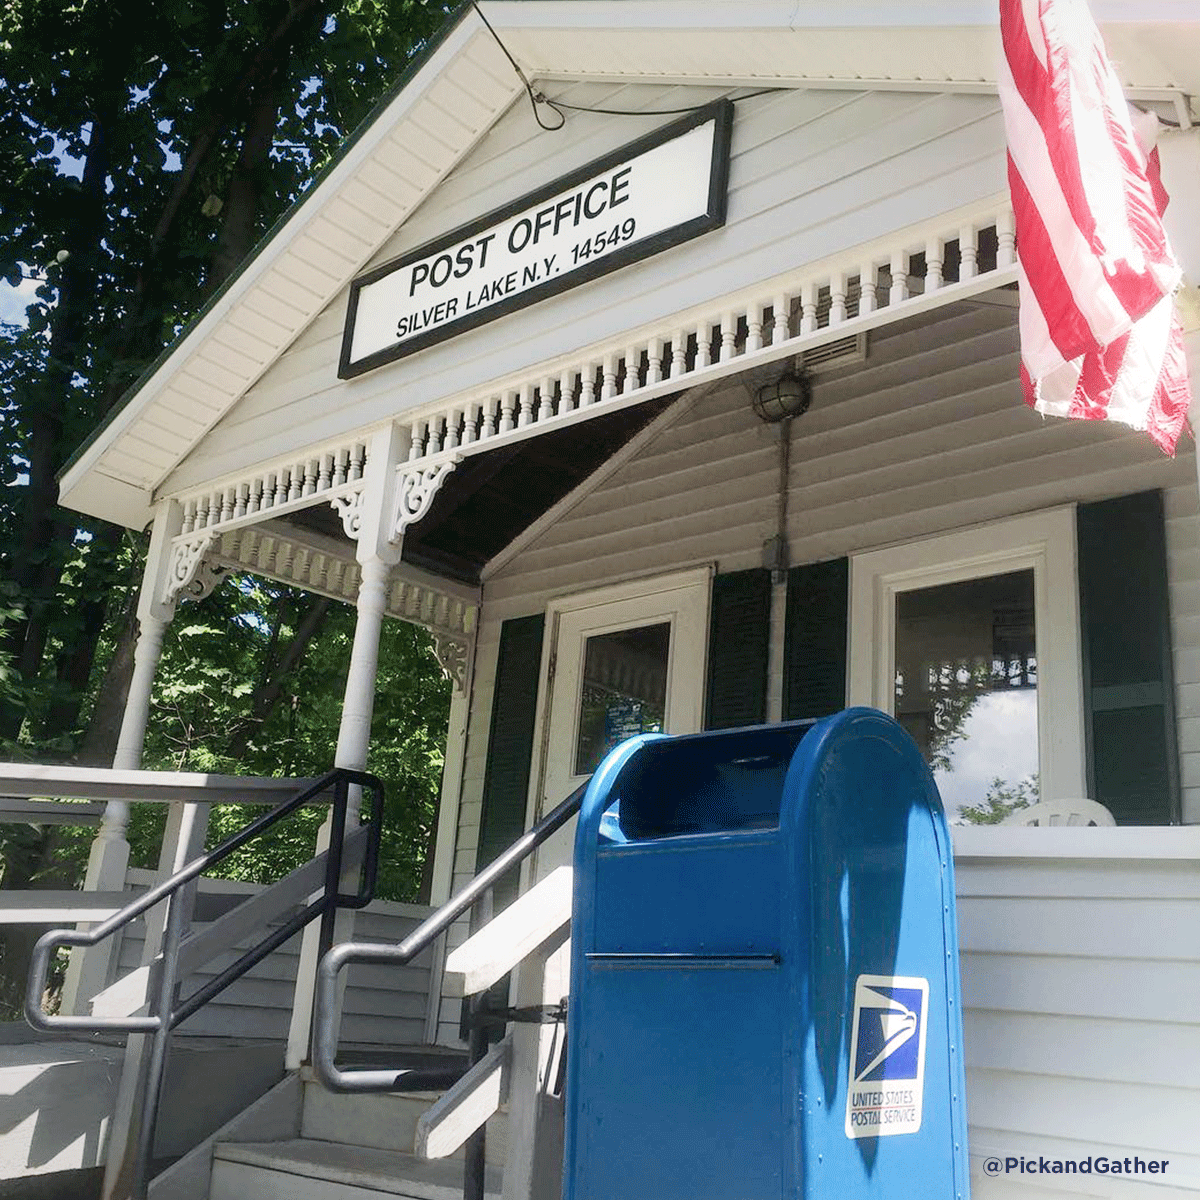 It May Not Be Our Smallest Post Office But It S Certainly One Of The Cutest Outdoor Decor Post Office Places